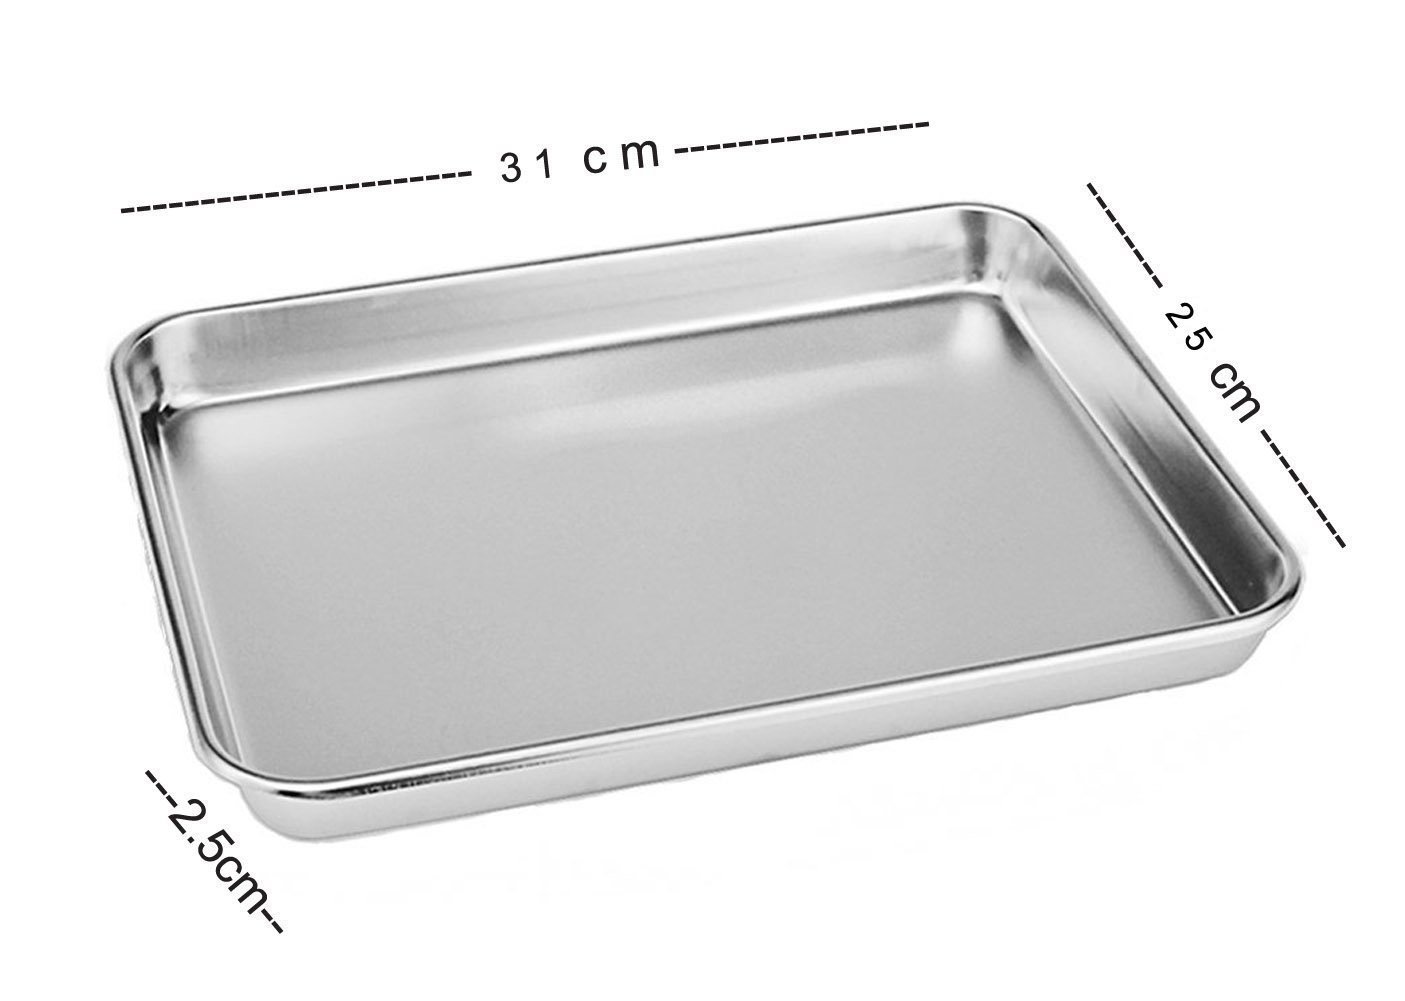 Aeehfeng Stainless Steel Toaster Oven Pan Tray Ovenware, Big Size 12'' x 10'' x 1'', Rust Resistant & Healthy, Mirror Finish & Deep Edge, Easy Clean & Dishwasher Safe by aeehfeng (Image #2)